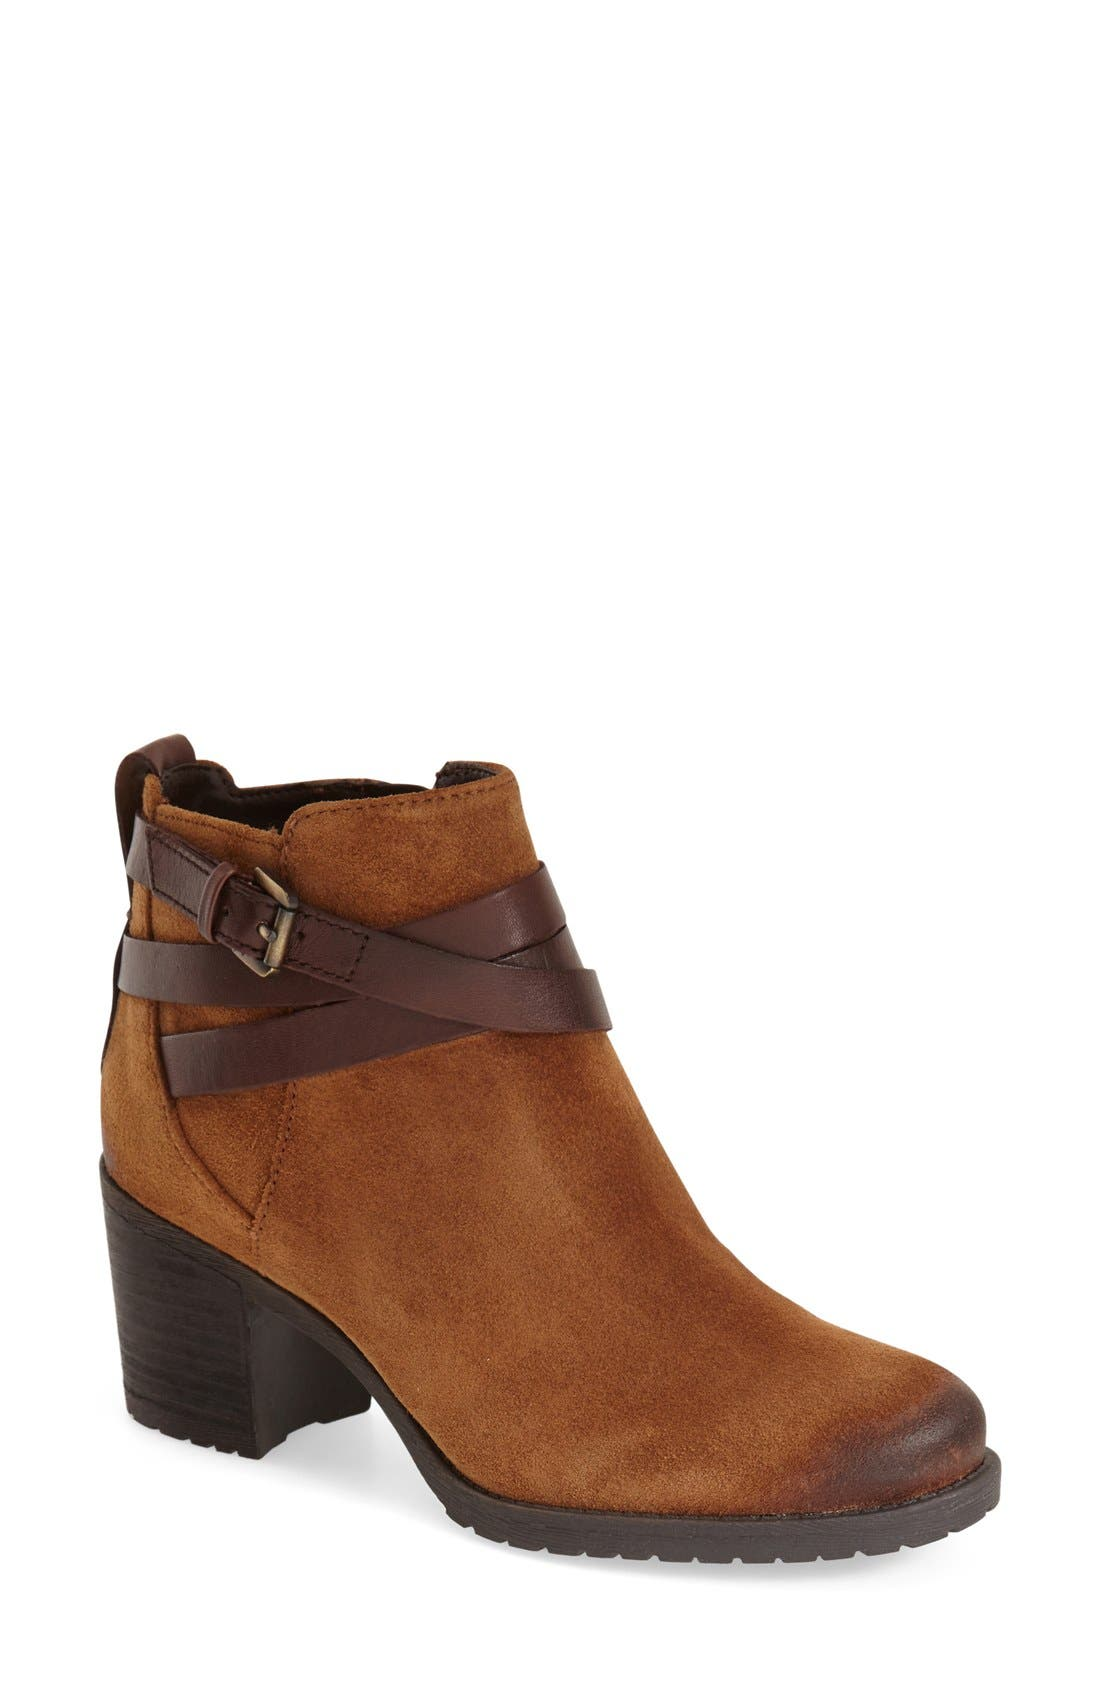 'Hannah' Belted Chelsea Bootie,                         Main,                         color, Mocha Latte/ Sienna